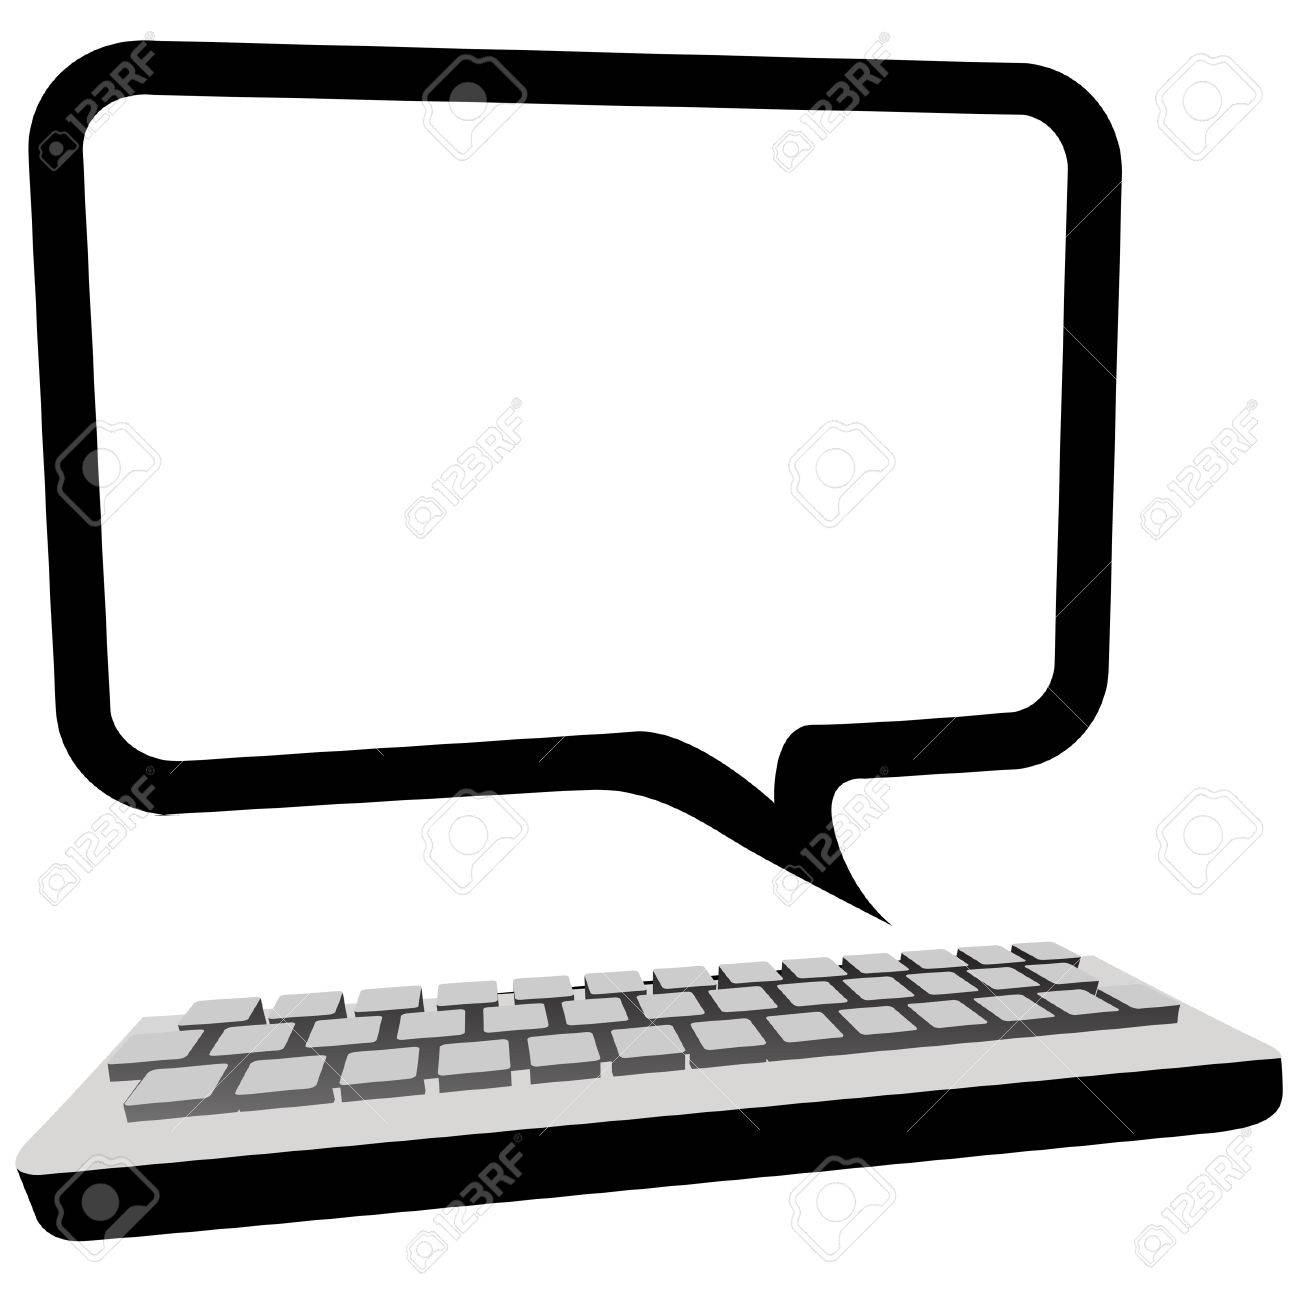 Type blog, email or other text in this speech bubble copyspace as a computer monitor above a keyboard. Stock Vector - 5215083